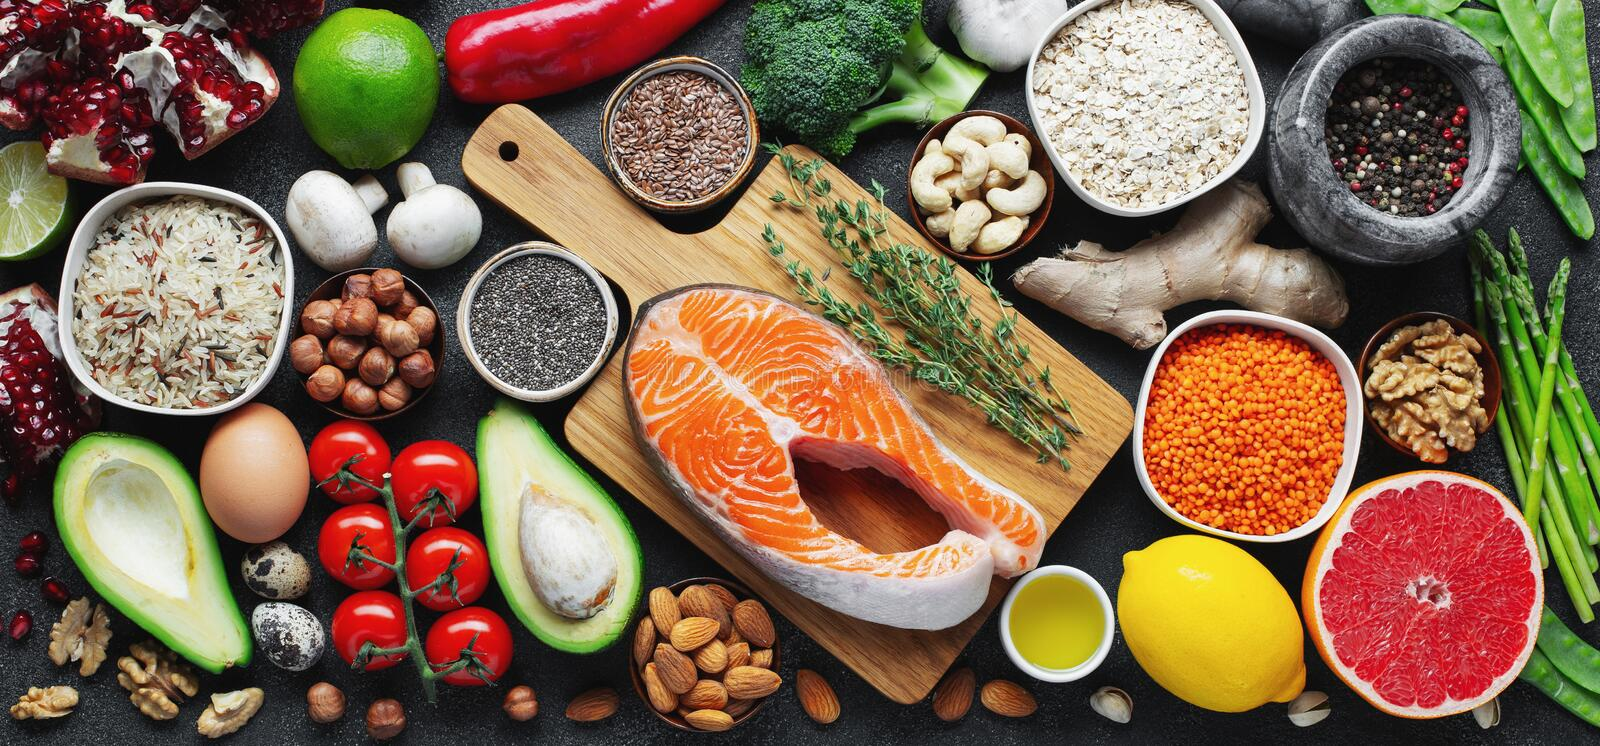 Healthy food clean eating selection: fish, fruit, nuts, vegetable, seeds, superfood, cereals, leaf vegetable on black concrete stock photo